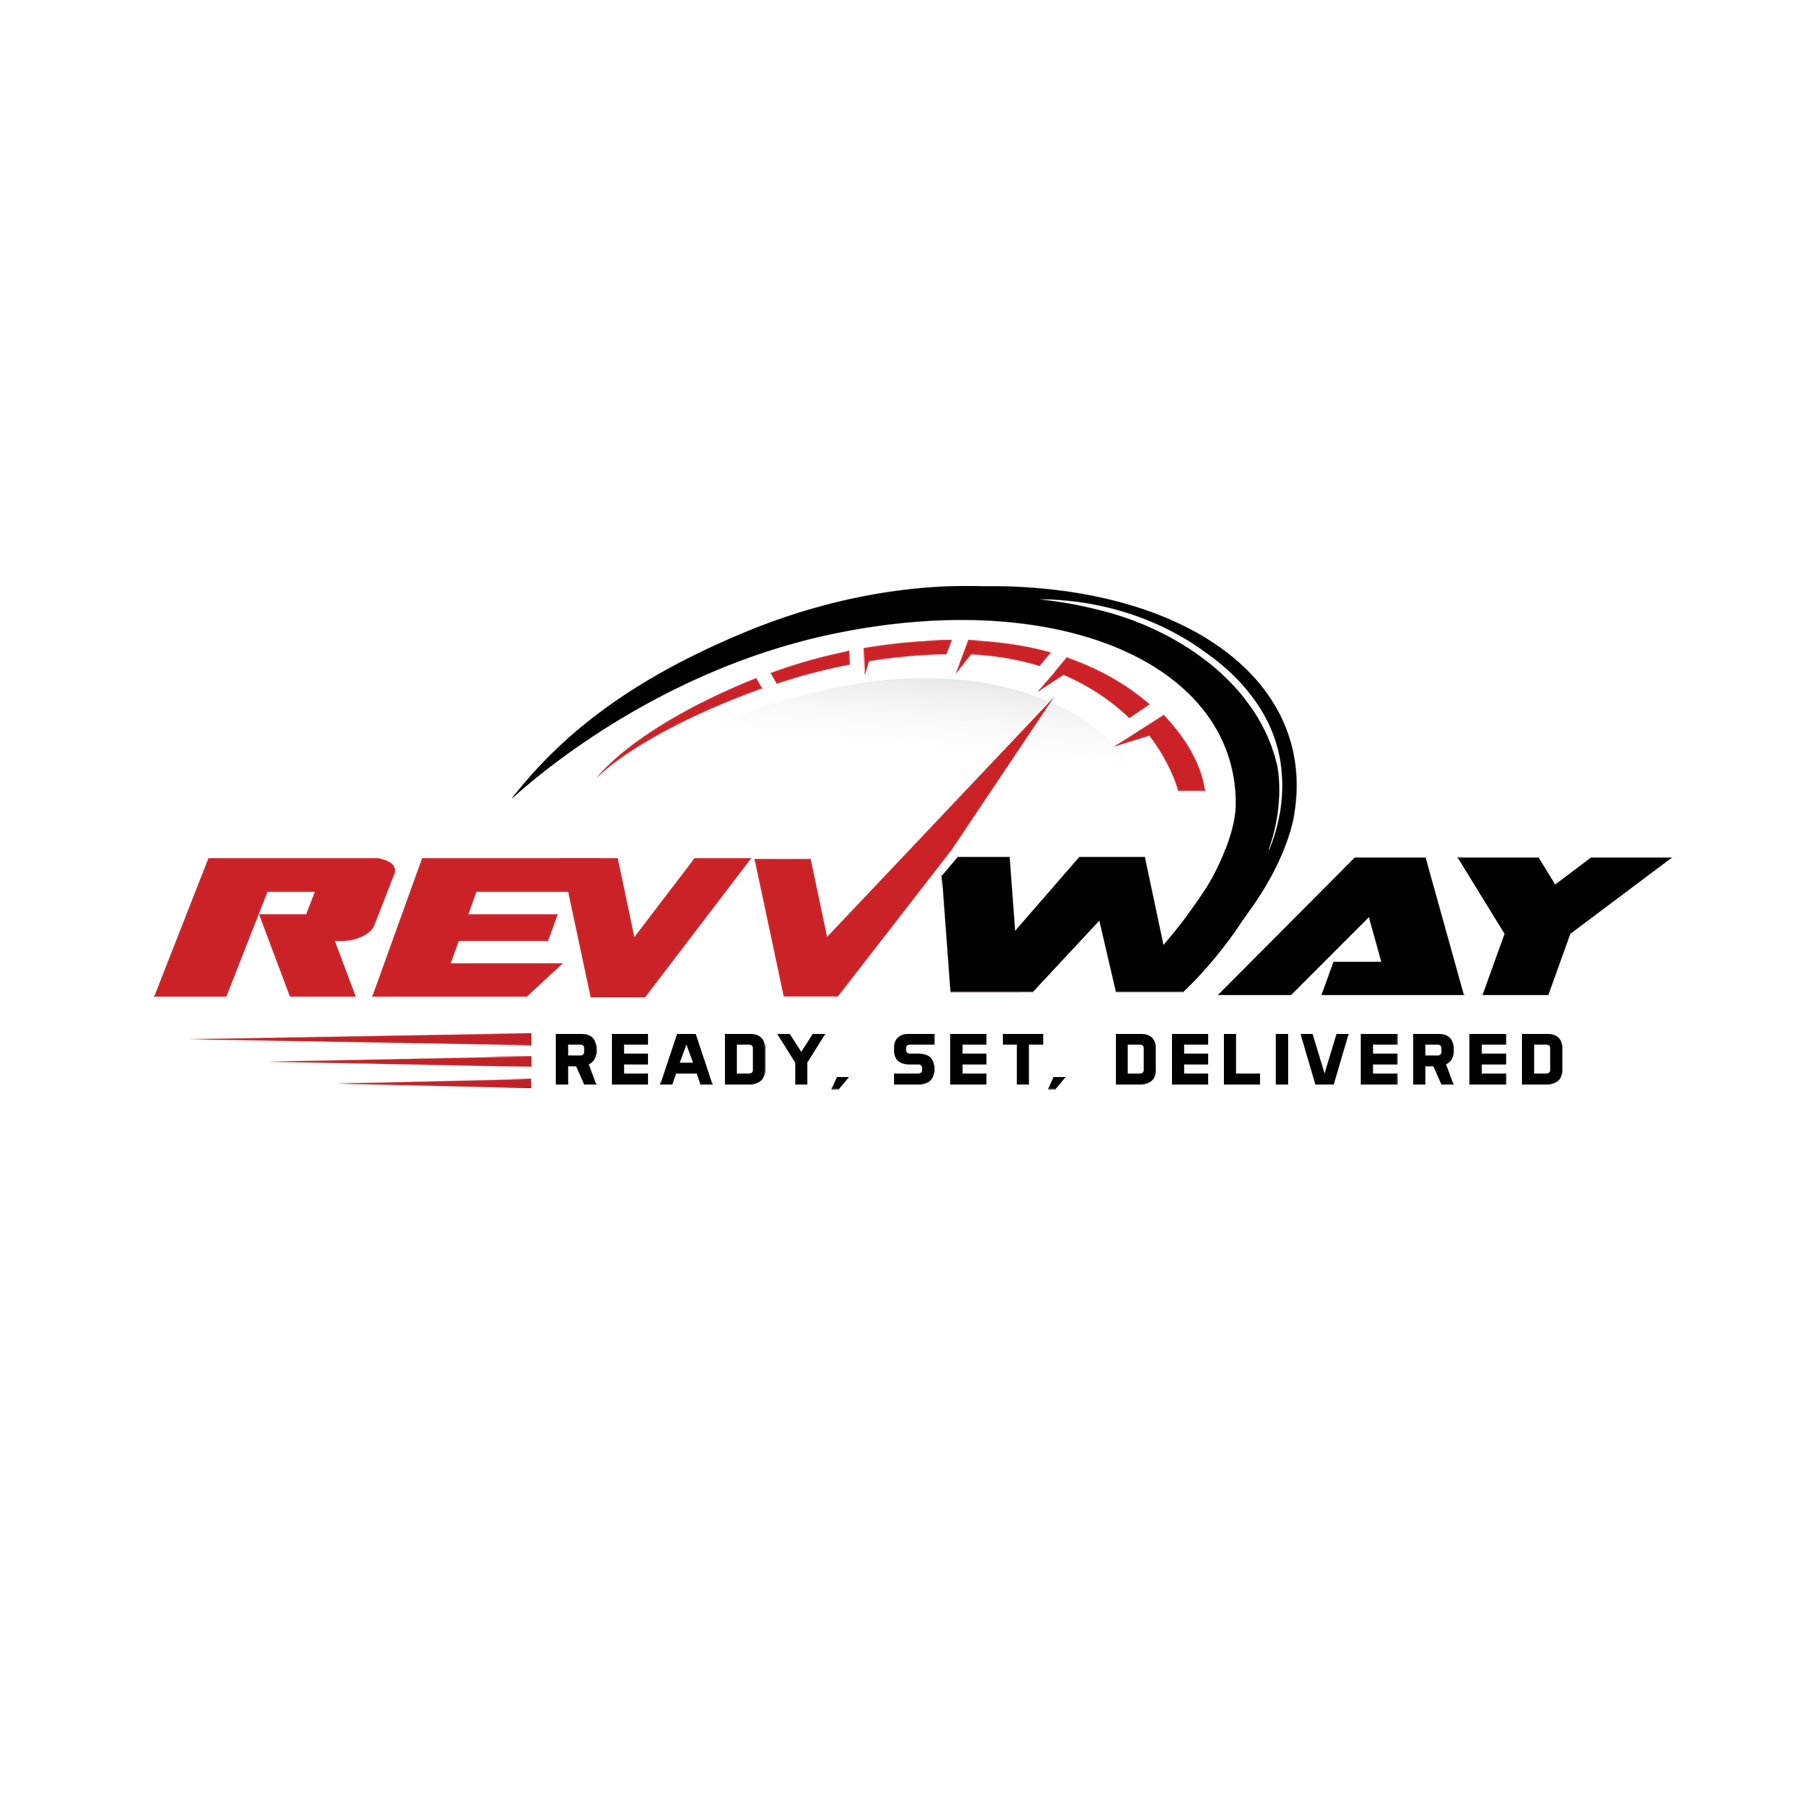 Design a sleek auto parts delivery logo for RevvWay